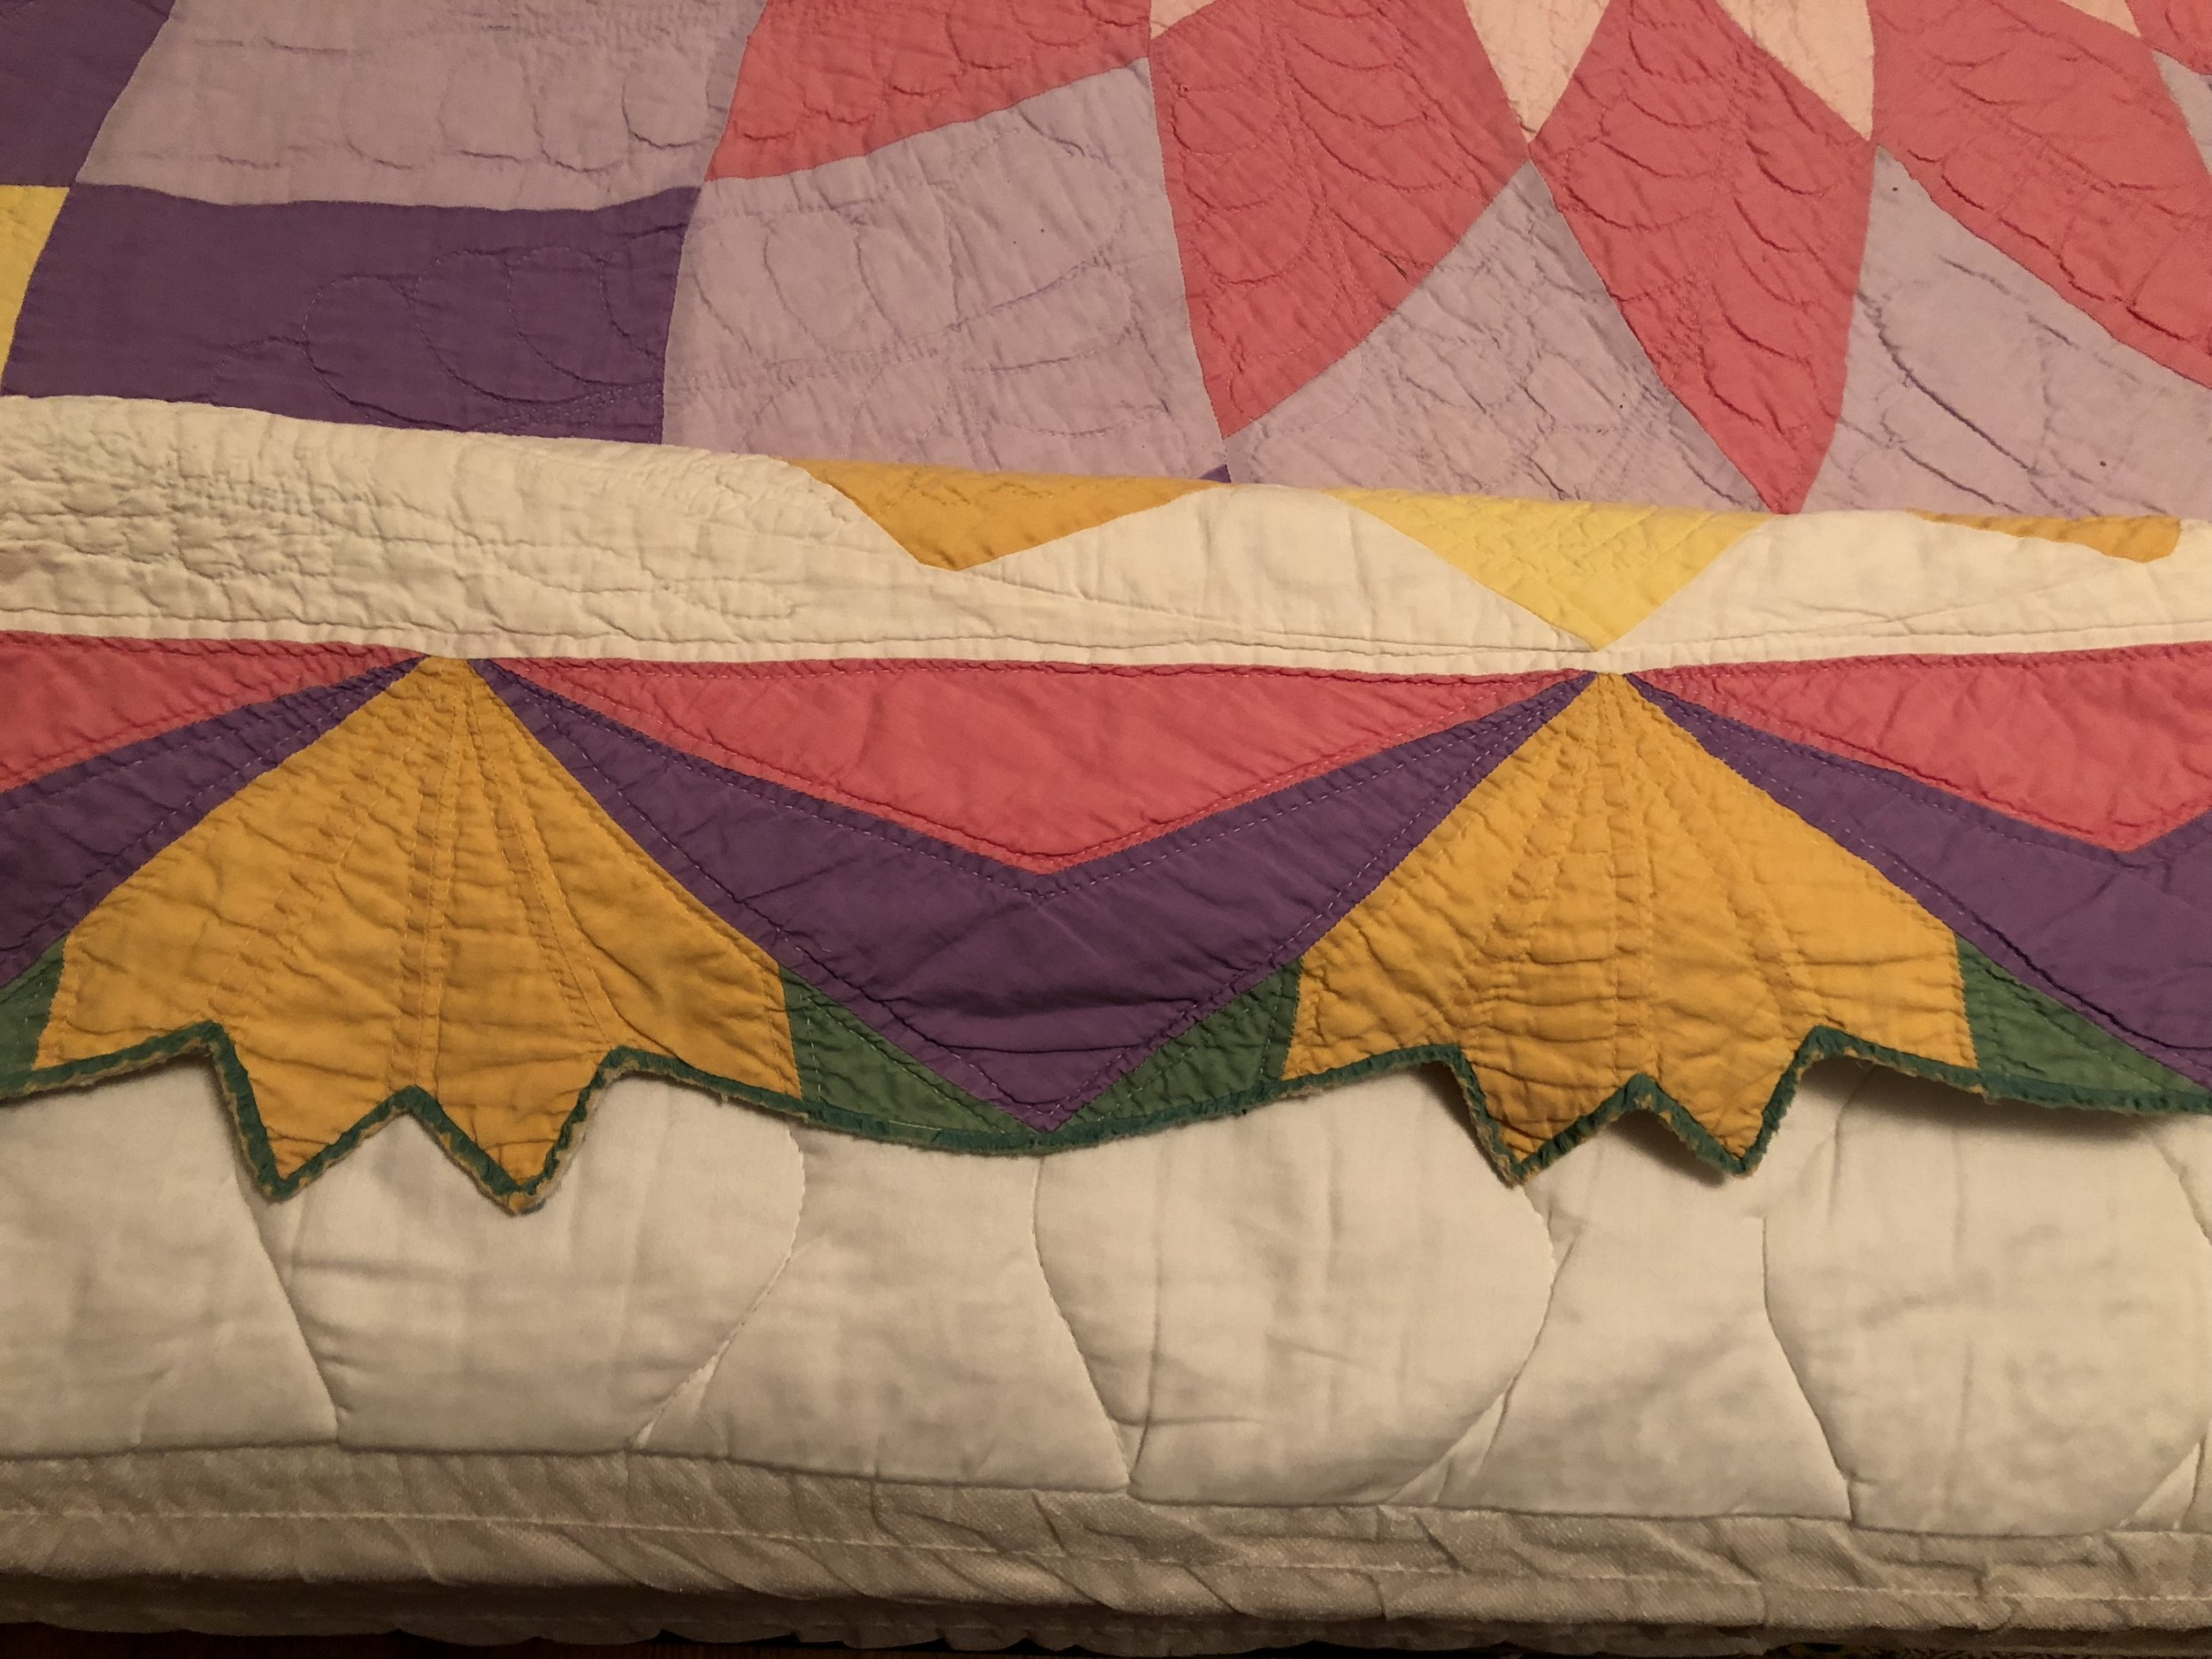 Here's the border close-up. I pulled a part of it up onto the bed to show it better. The room was small so I couldn't get a good shot of the whole border. The binding has frayed significantly—I told her she could have that repaired if she wanted to but I actually sort of like it with the original. Shows it's well-loved.